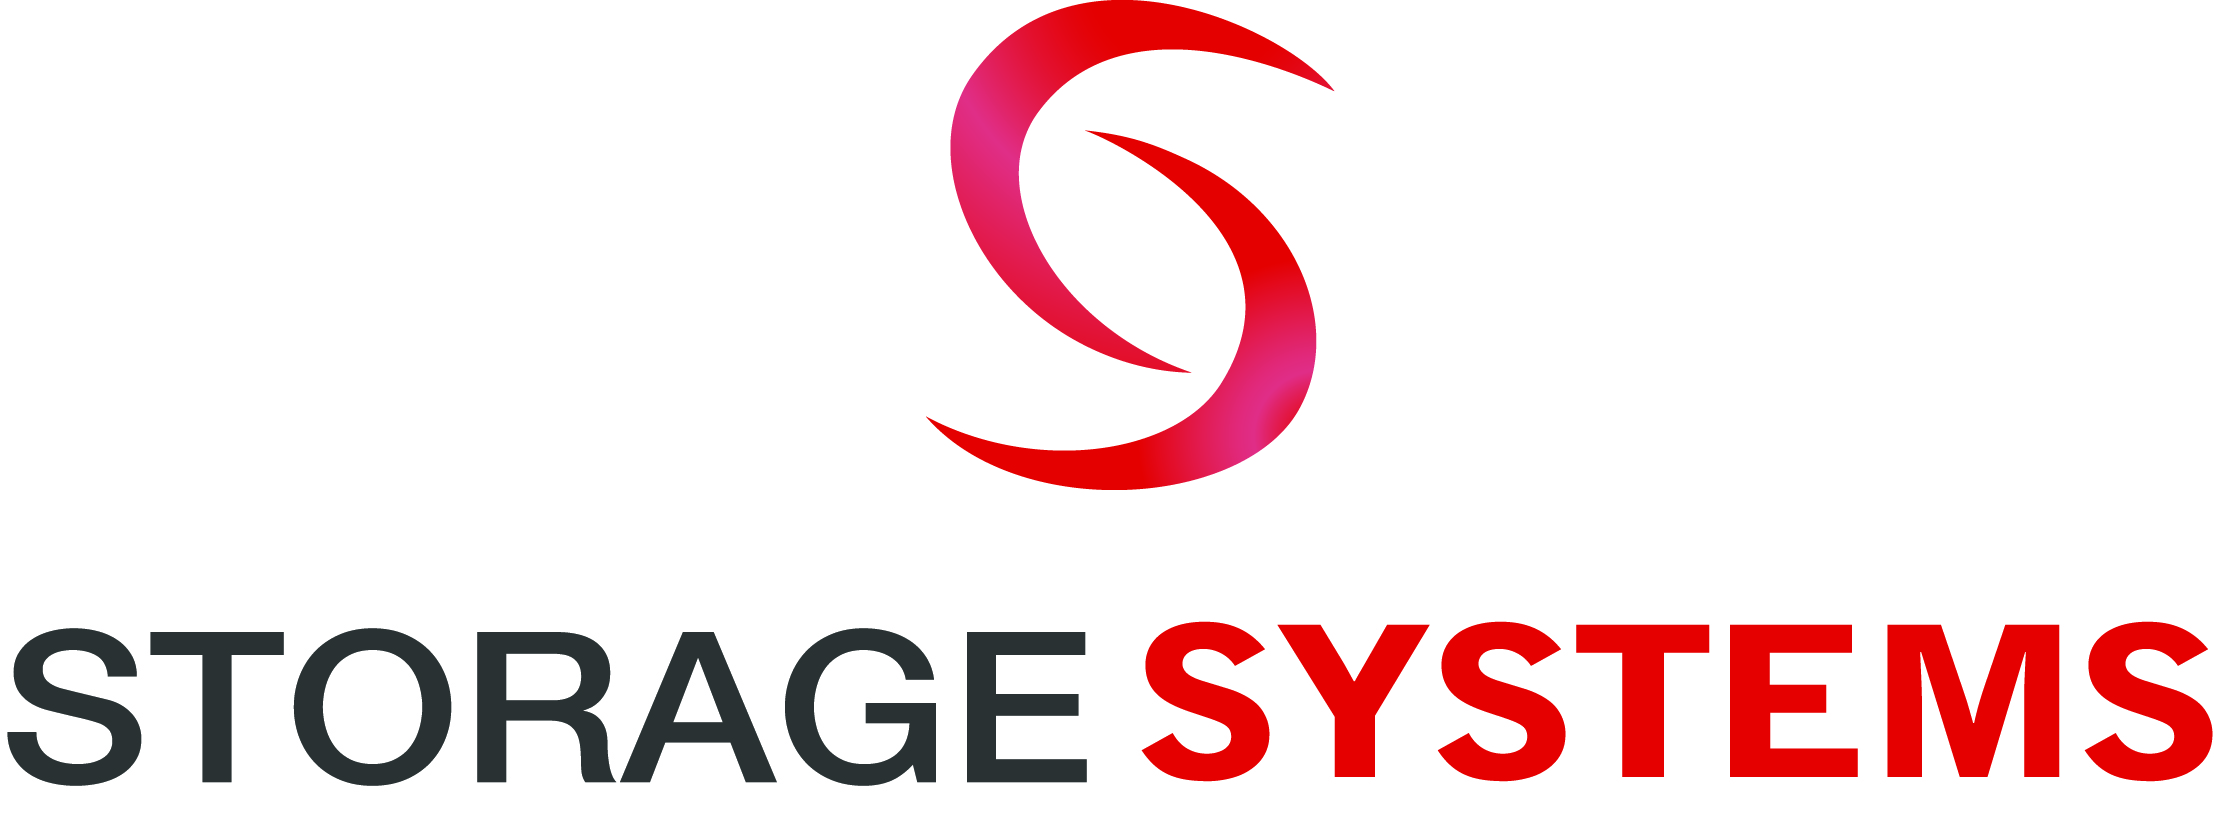 HIRES storage-systems-logo CMYK